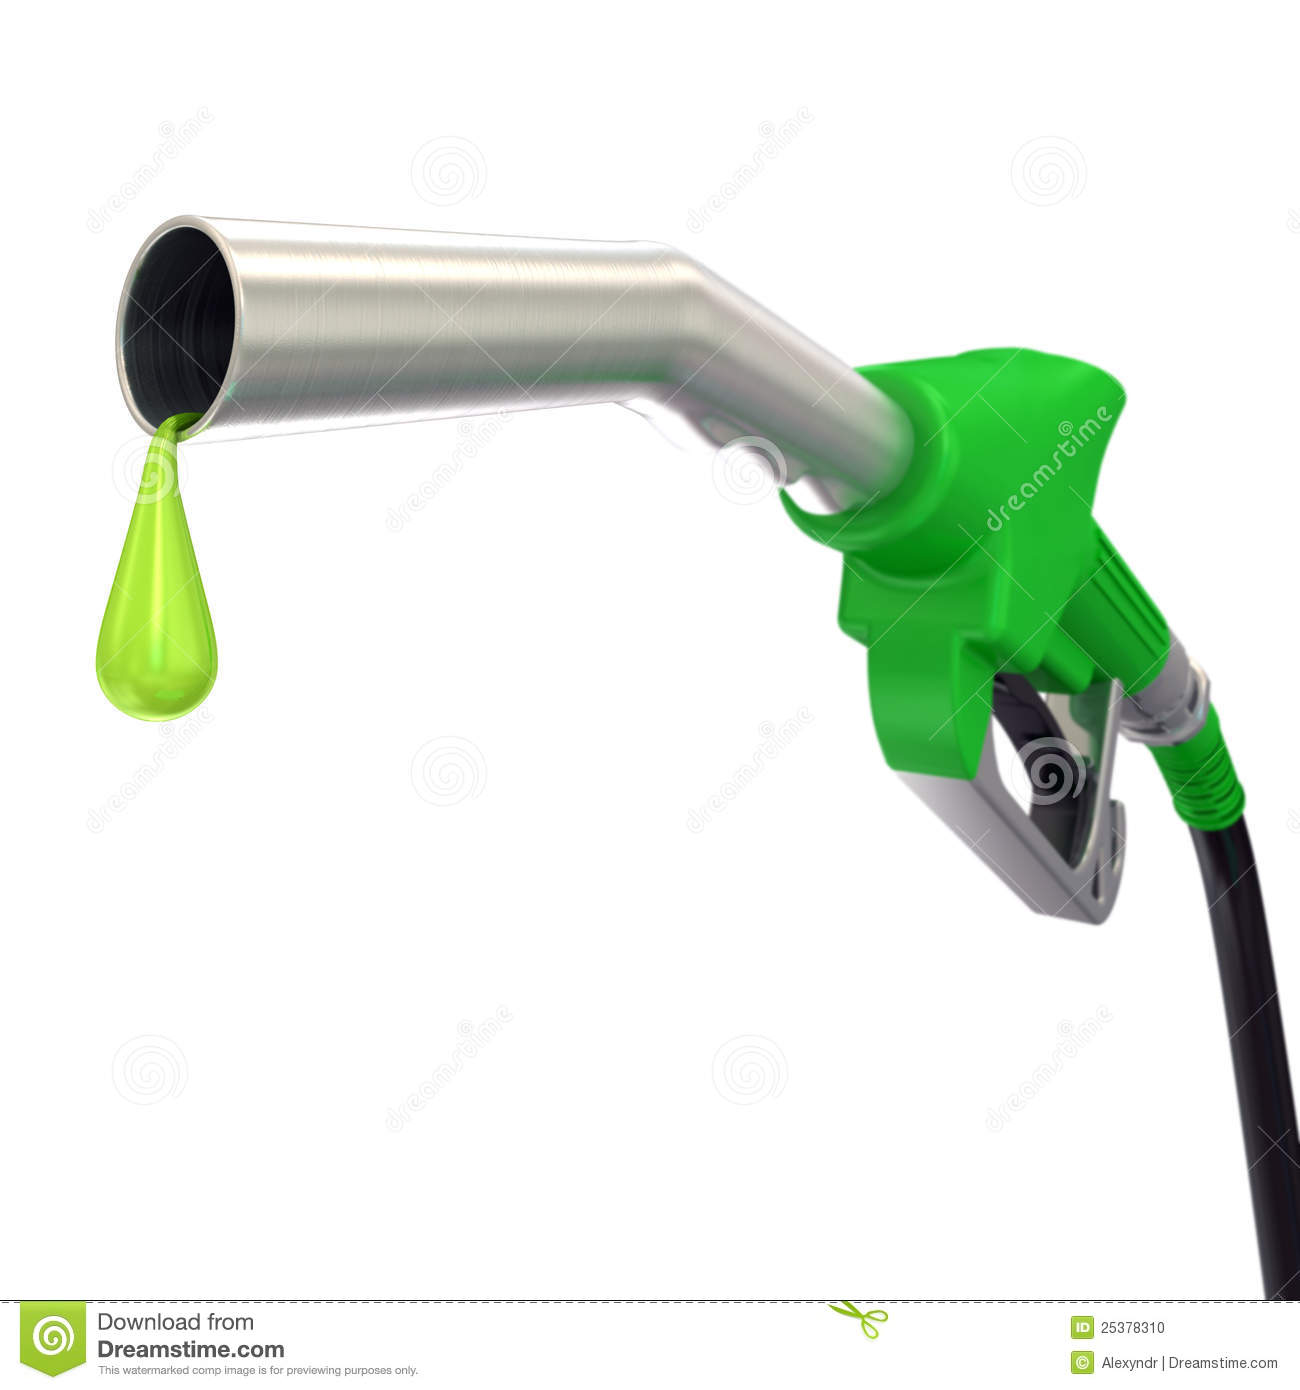 IF YOUR RUNNING OUT OF FUEL THE BEST THING TO DO IS DRIVE, STOP AND LET YOUR CAR ROLL, DRIVE STOP AND LET YOUR CAR ROLL